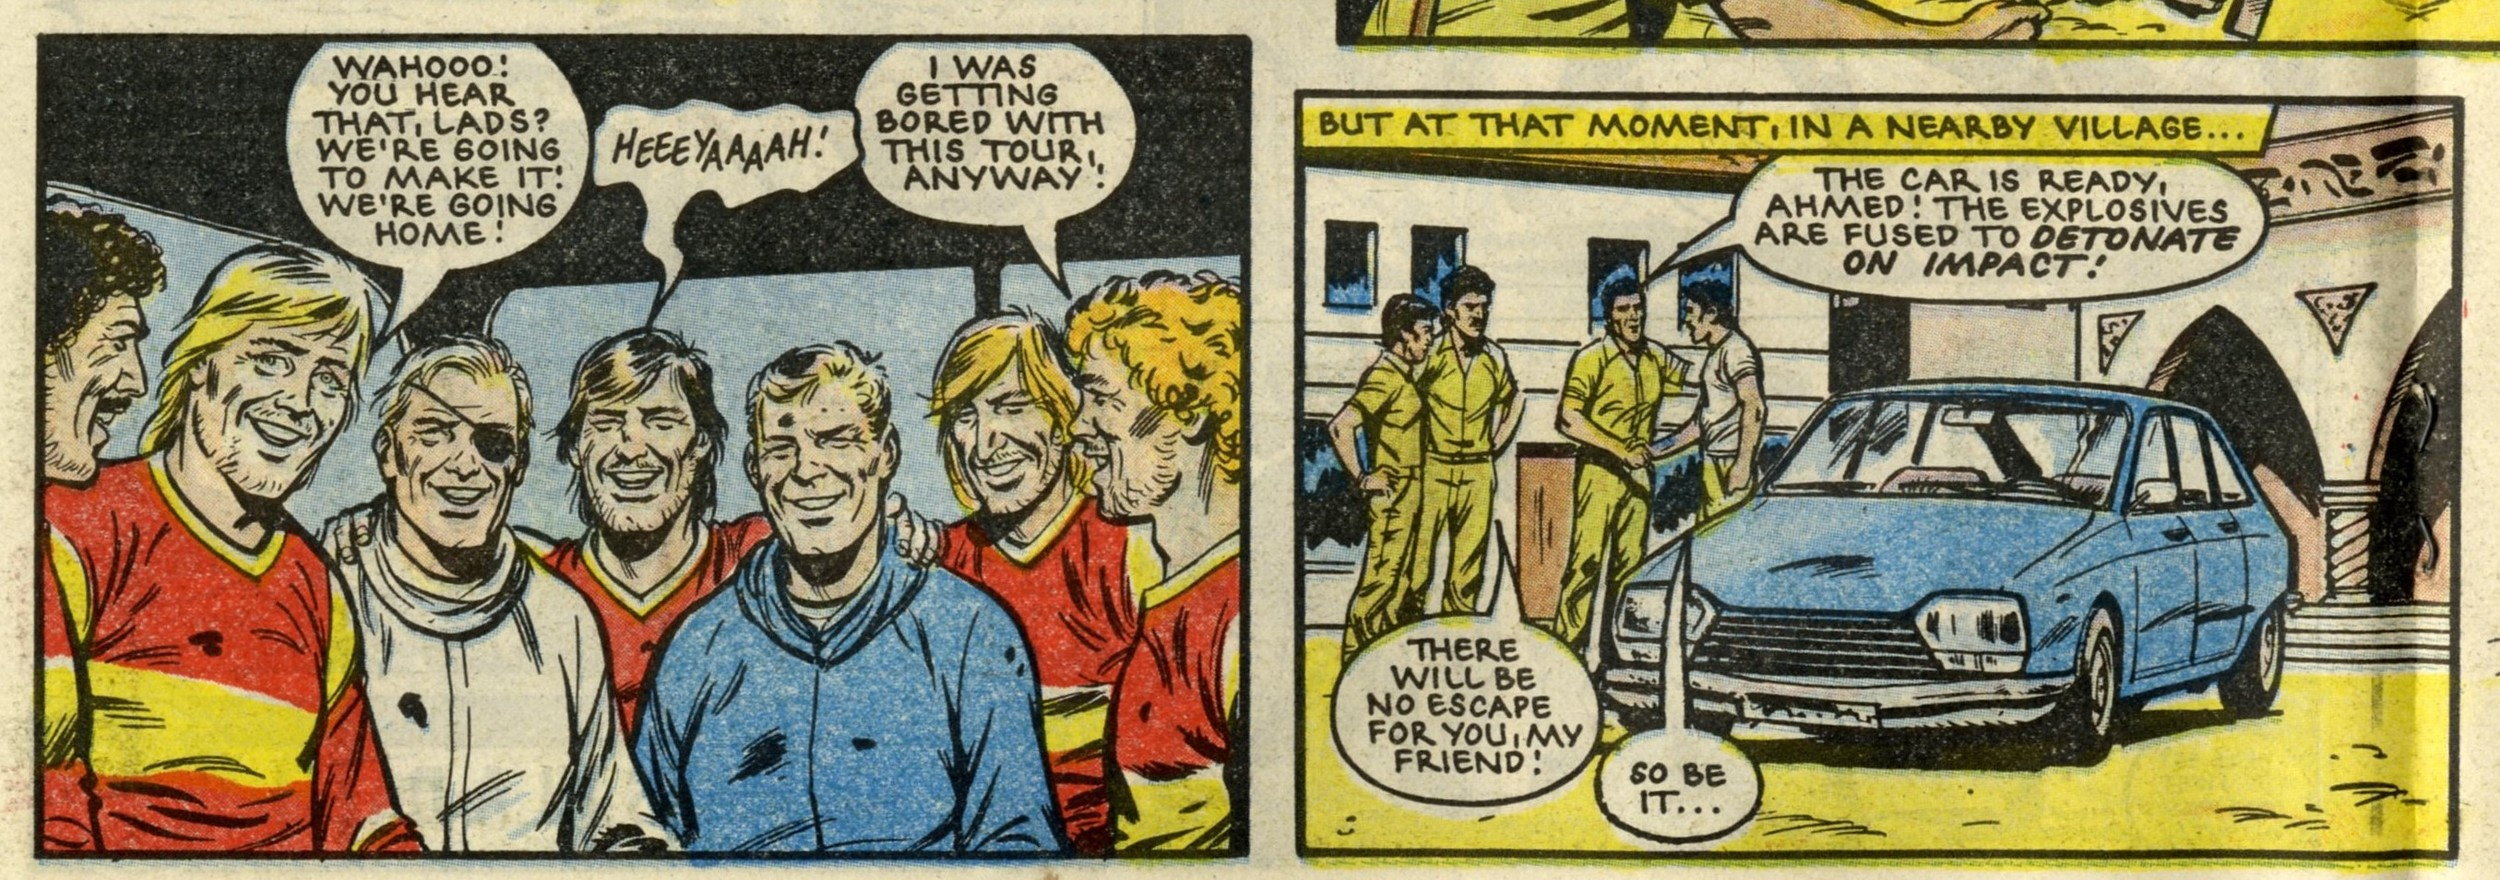 Roy of the Rovers (from previous issue, 12 July 1986): Tom Tully (writer), David Sque (artist)